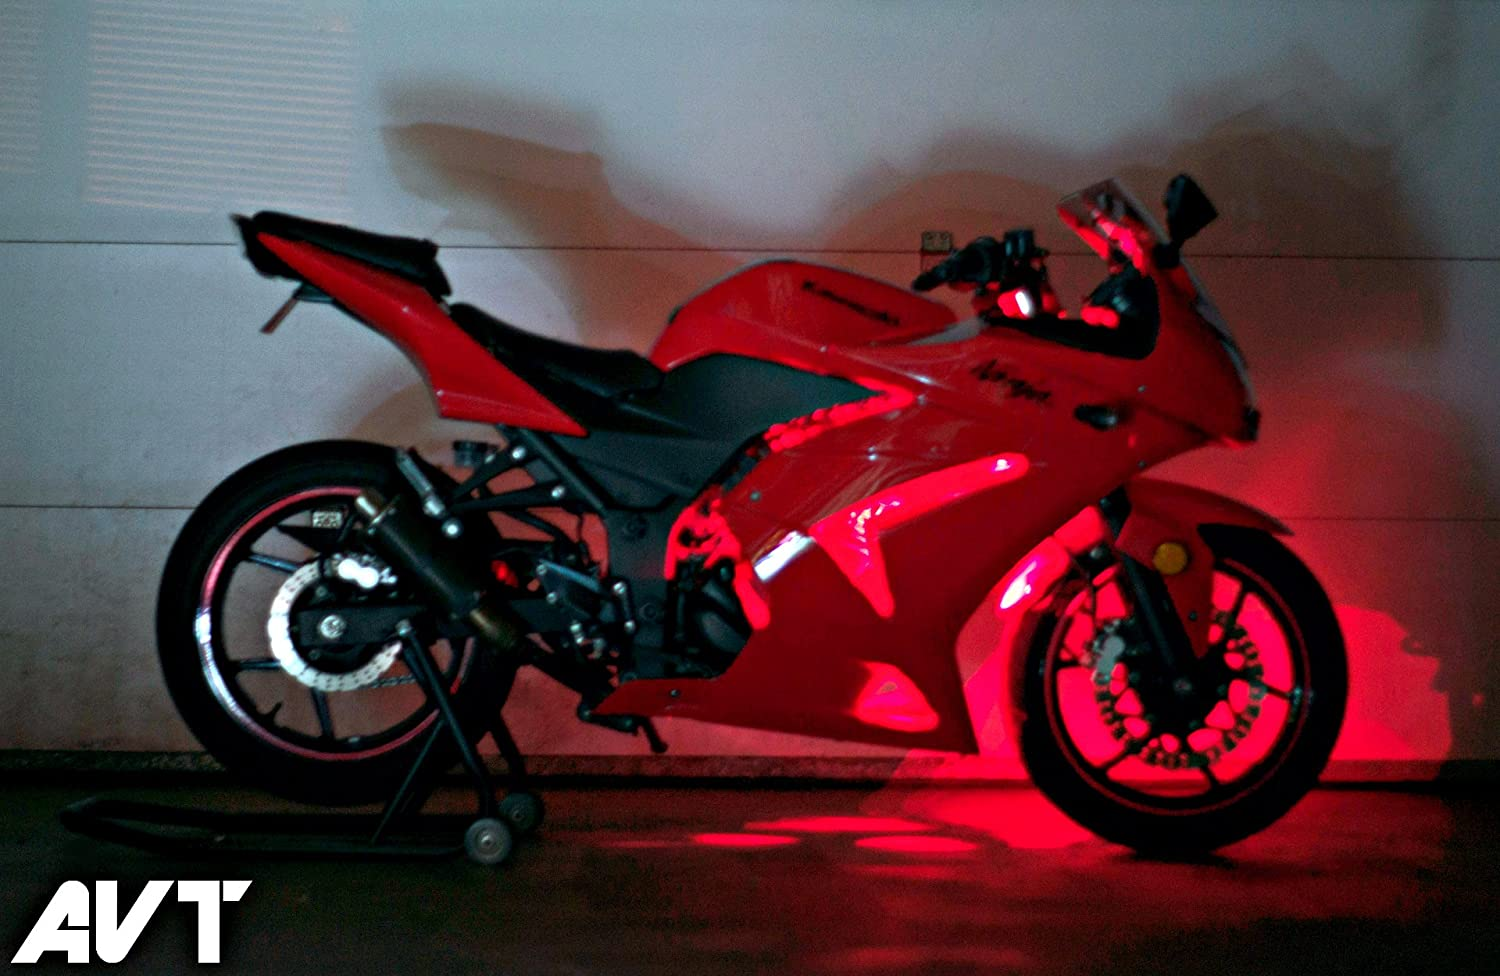 Avt Ninja 250 Body Glow Led Light Kit 2008 2012